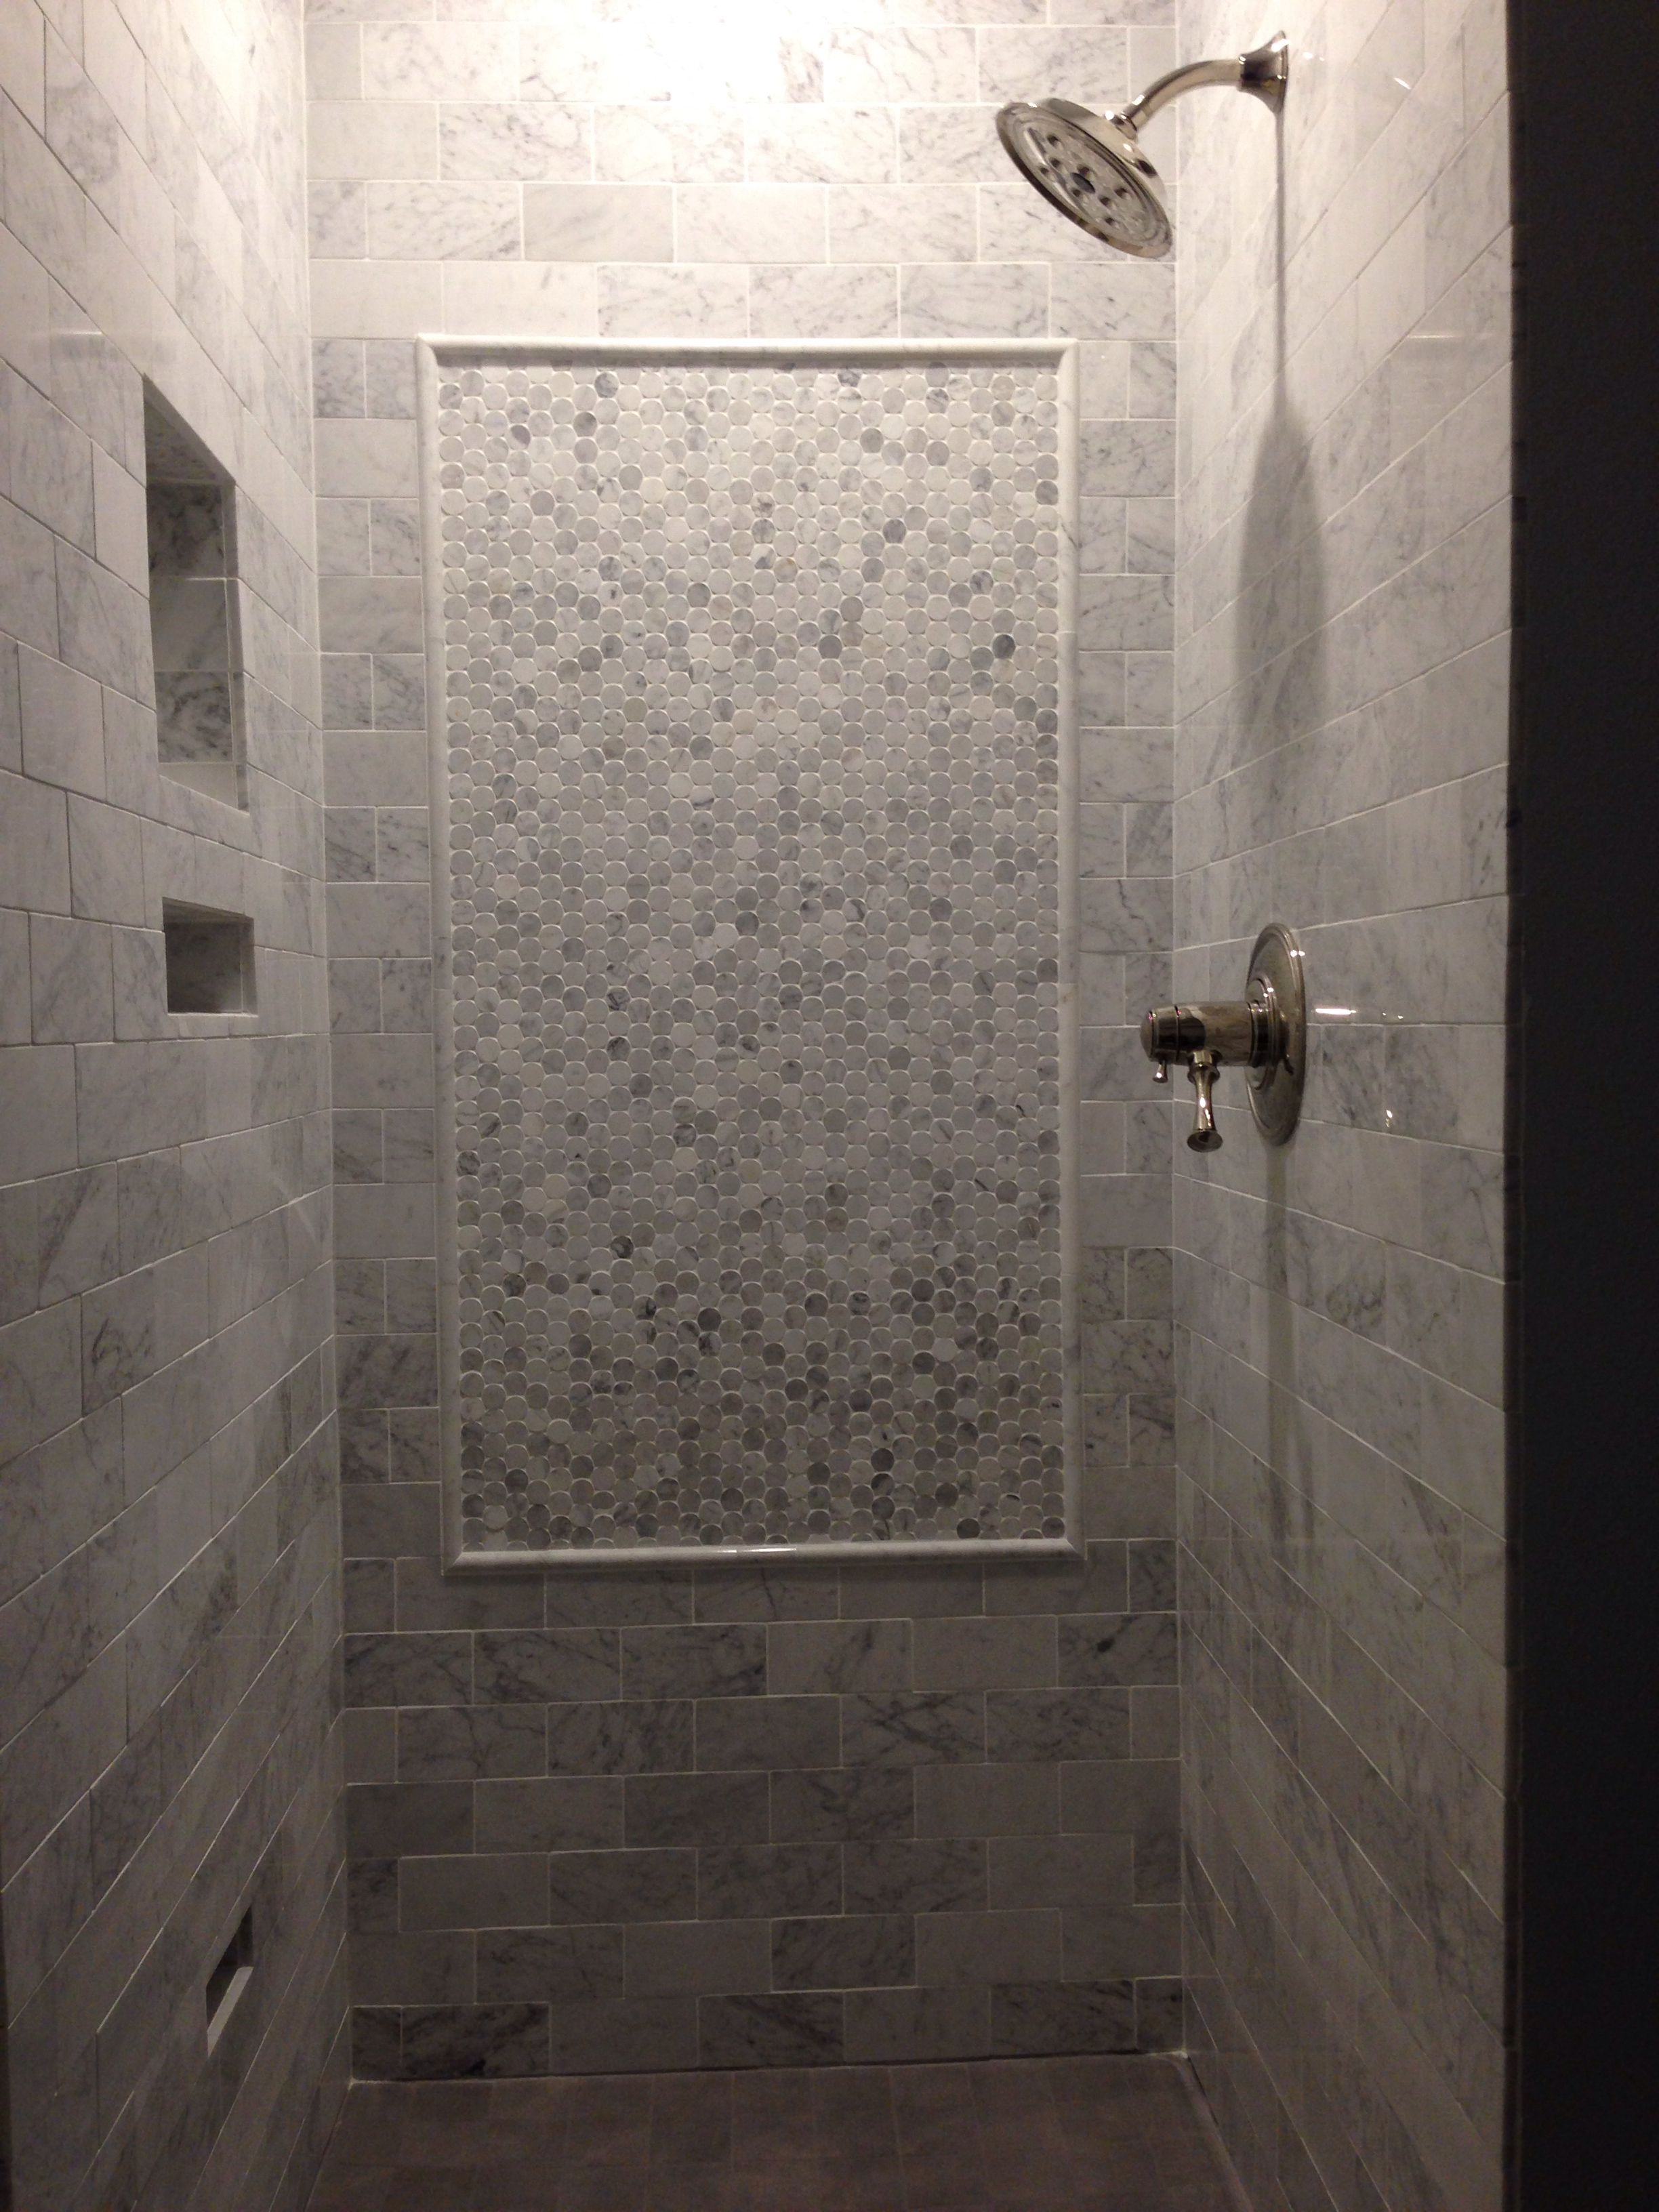 Carrera Marble Bathrooms Pictures: Carrera Marble Subway Tile With A Marble Penny Tile Inlay